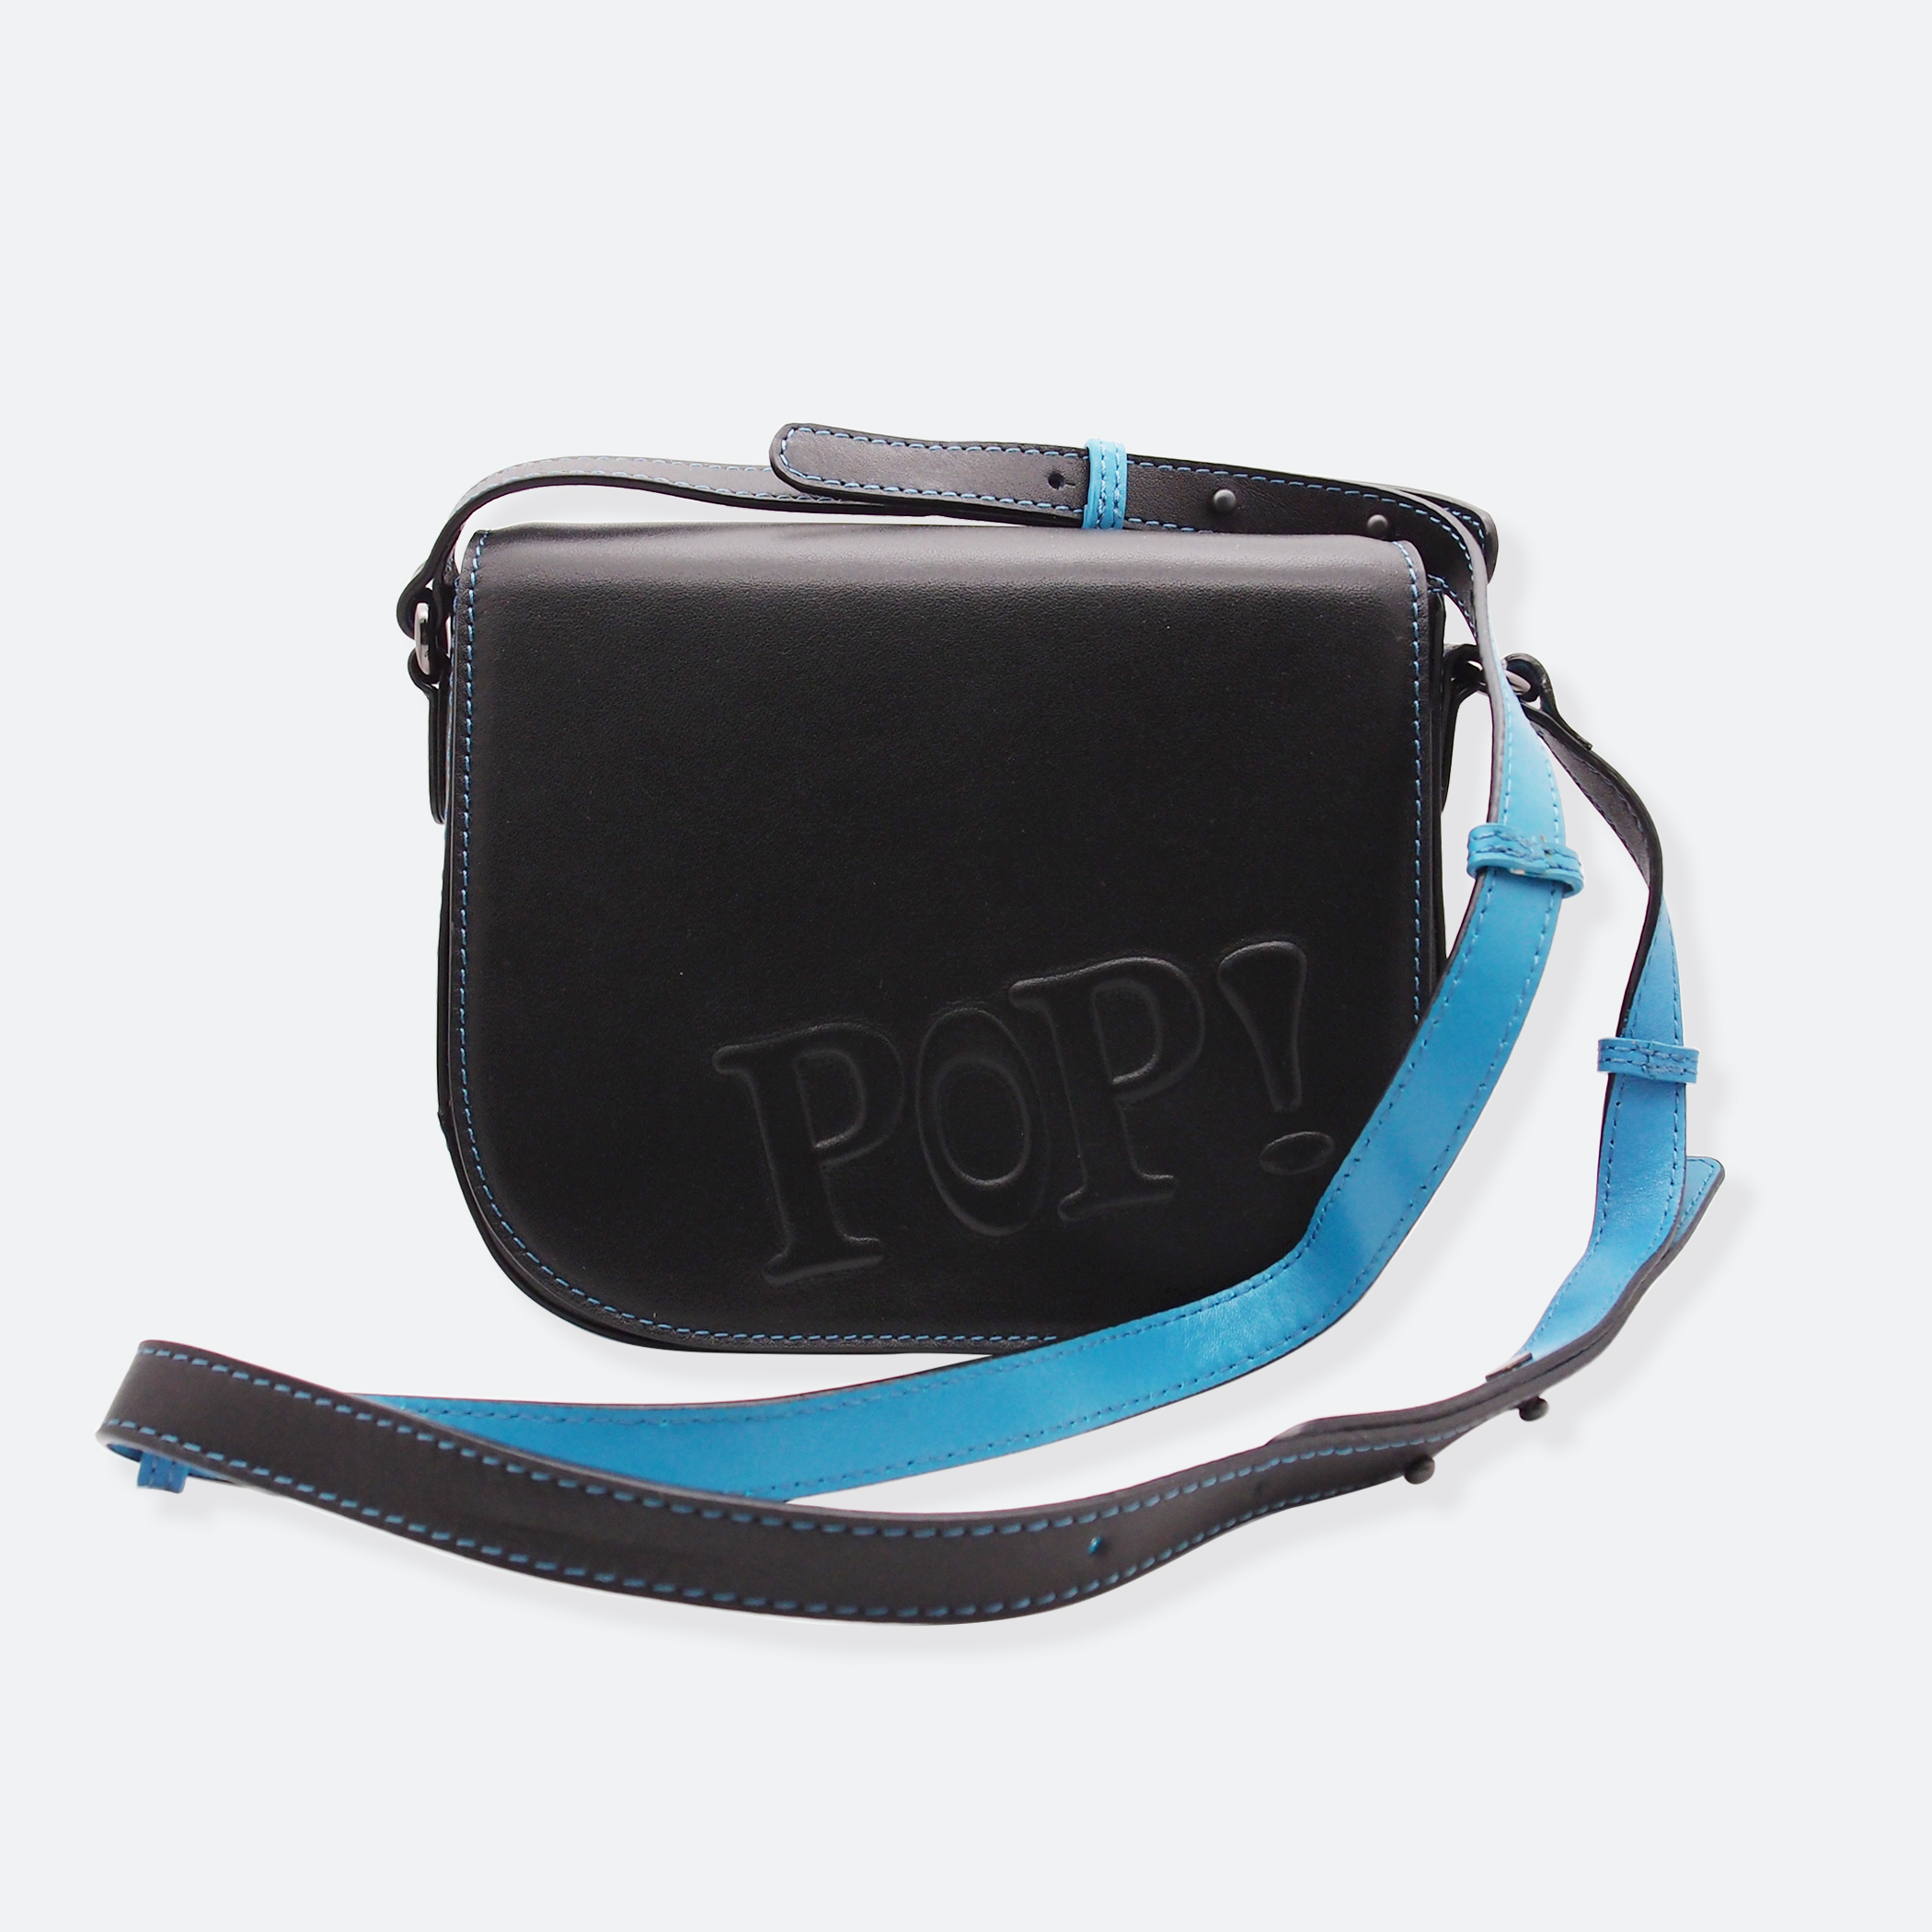 OhMart POP! Bag(Black-Blue) 3